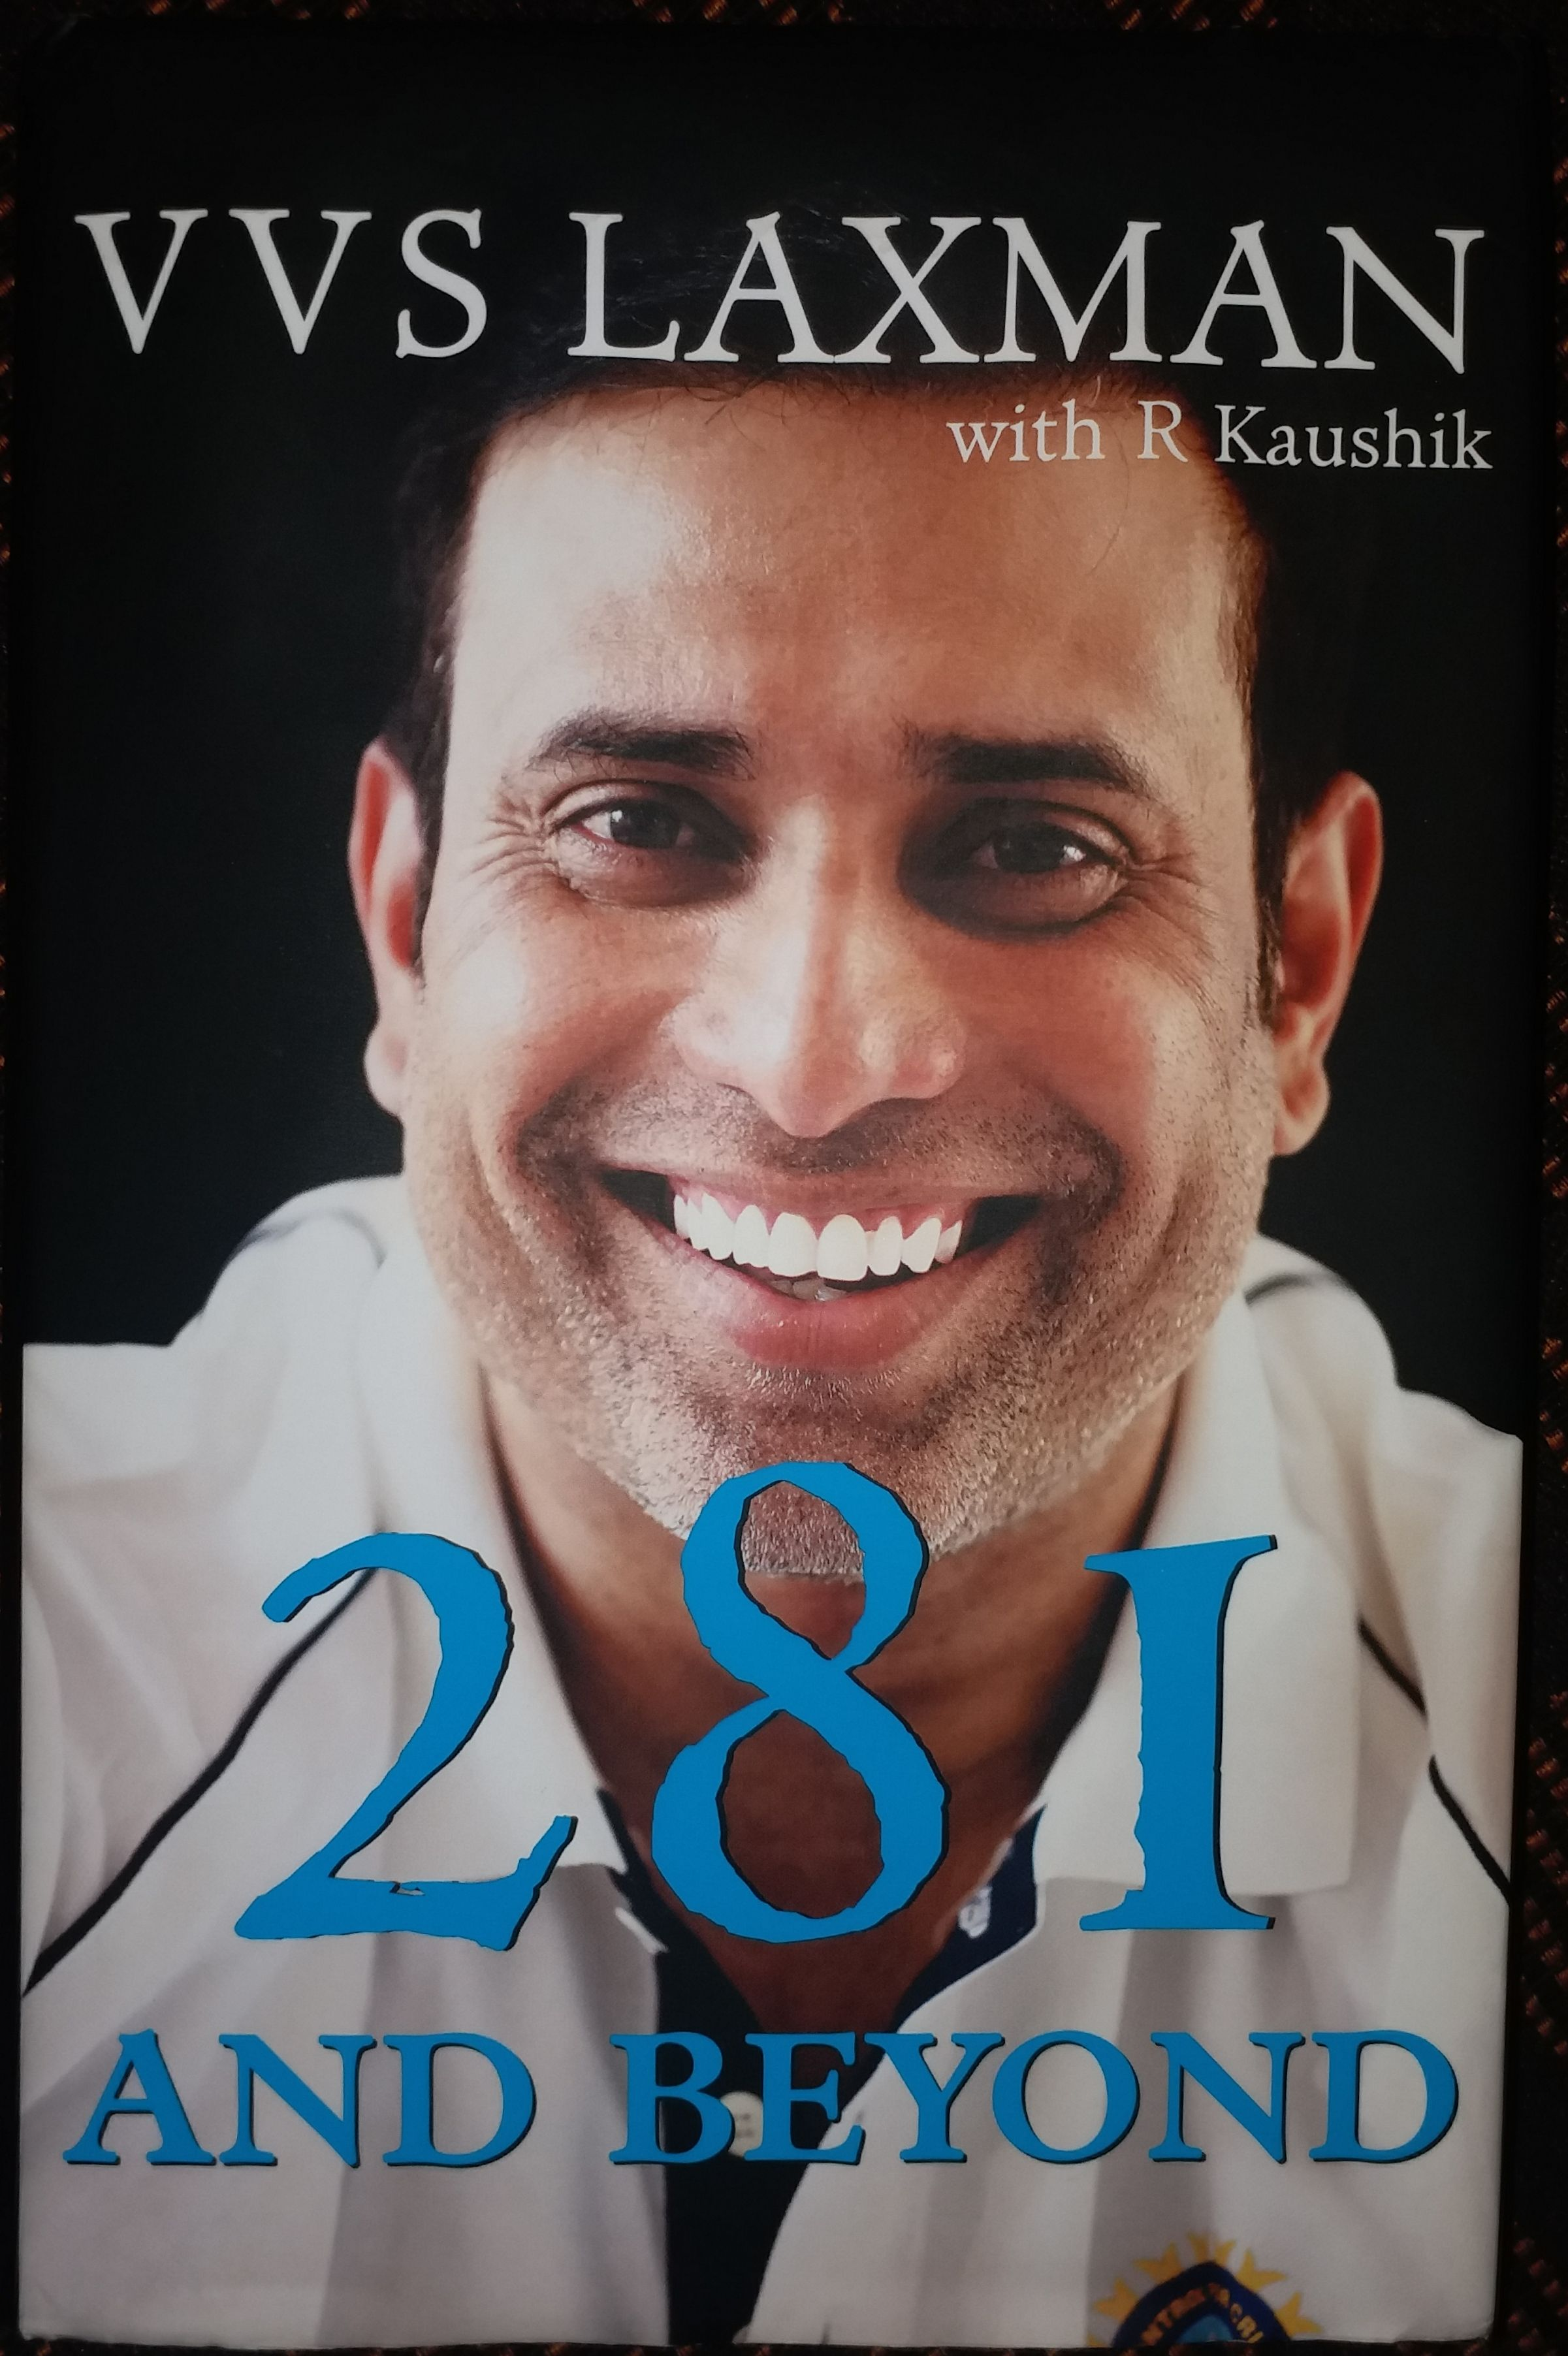 281 And Beyond Vvs Laxman With R Kaushik Autobiography Writing Vvs Autobiography